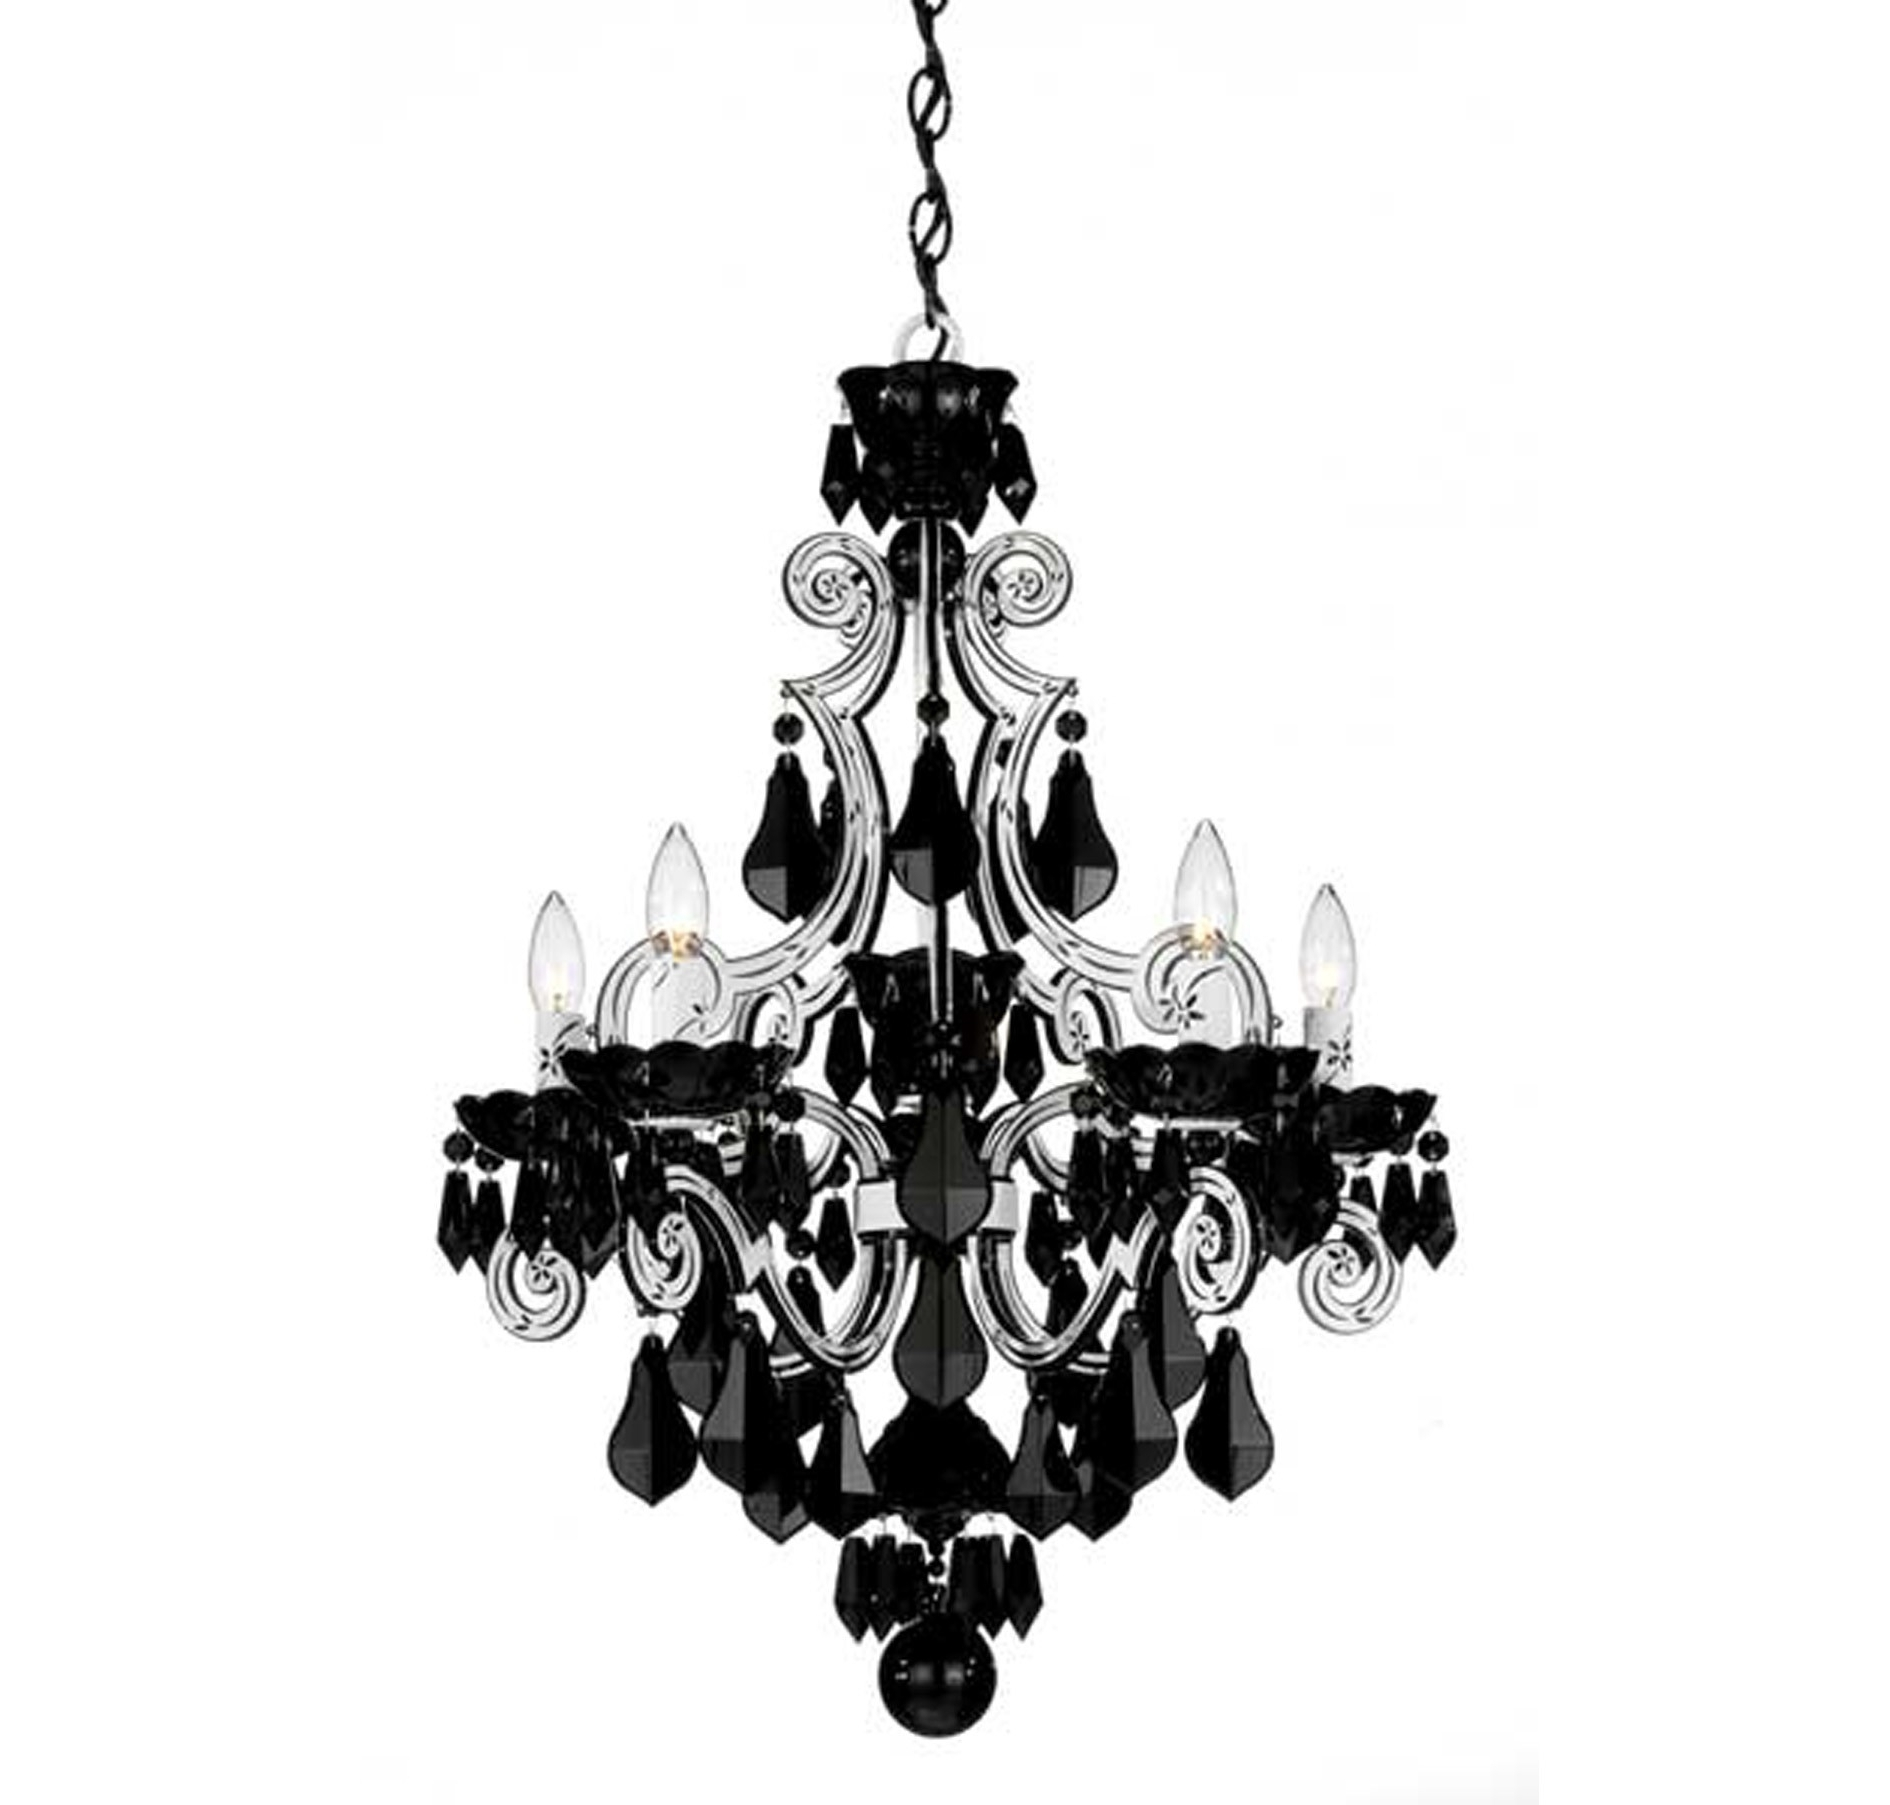 Black Glass Chandeliers Regarding Most Recent Light : Alluring Clear White Black Glass Crystal Chandelier Metal (View 5 of 20)